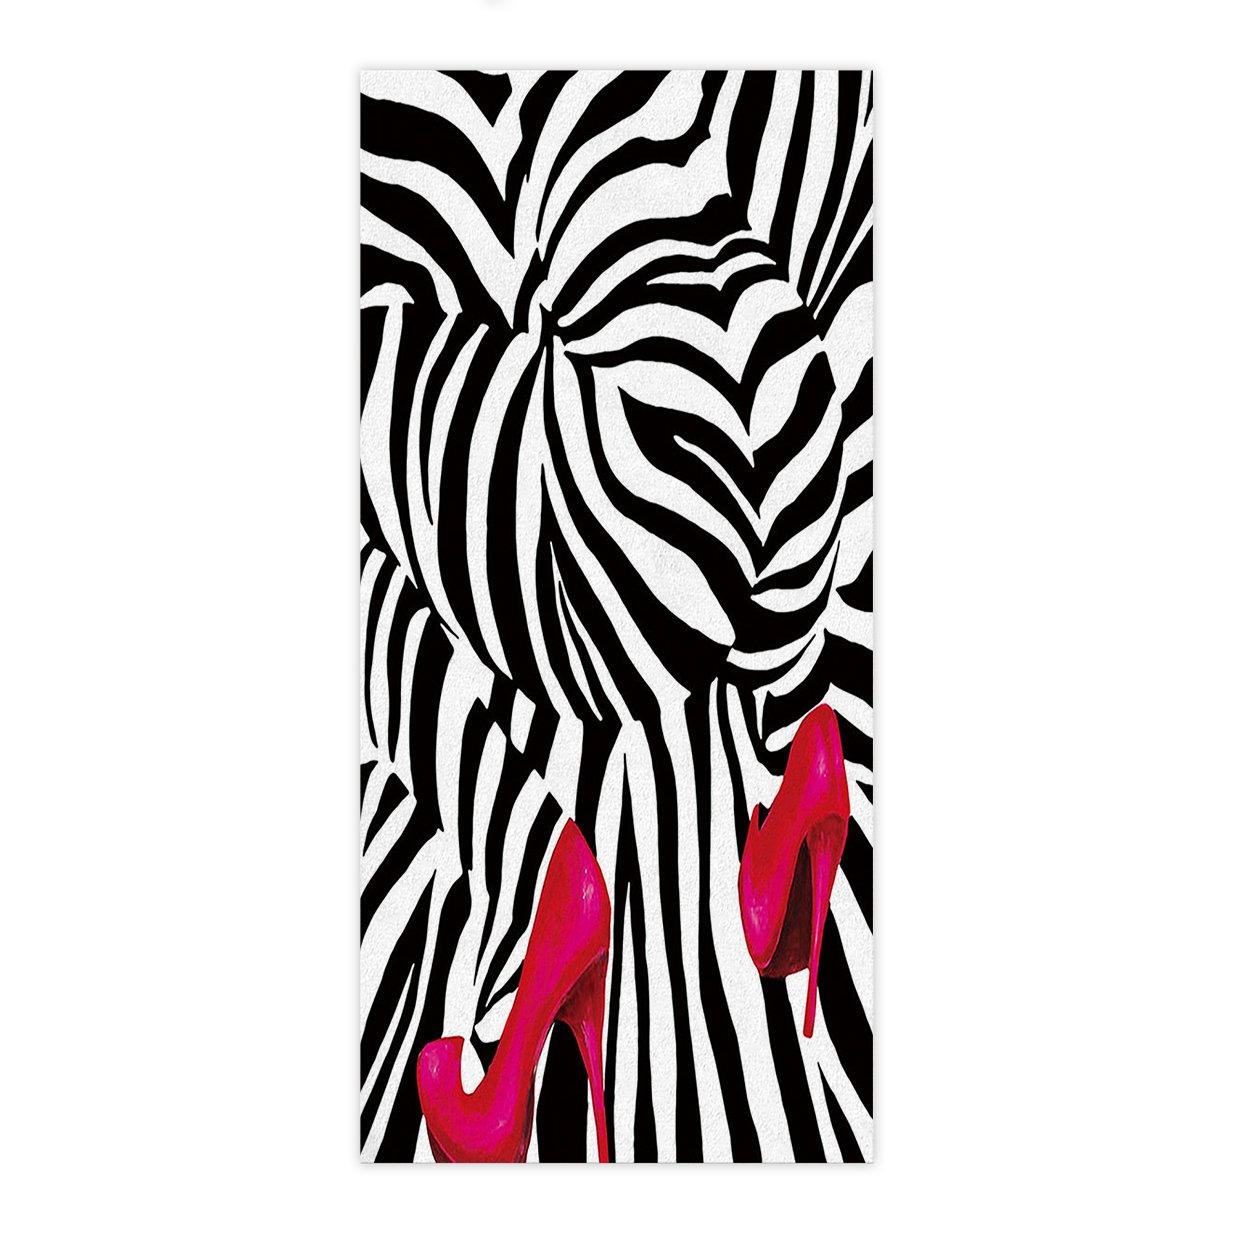 Crystal Emotion Abstract Sexy Zebra Woman Big Ass with Red High-heeled  Shoes Art,Beach Towel Bath Towel Bathroom Shower Towel Bath Wrap For  Body,Gym,Spa ...